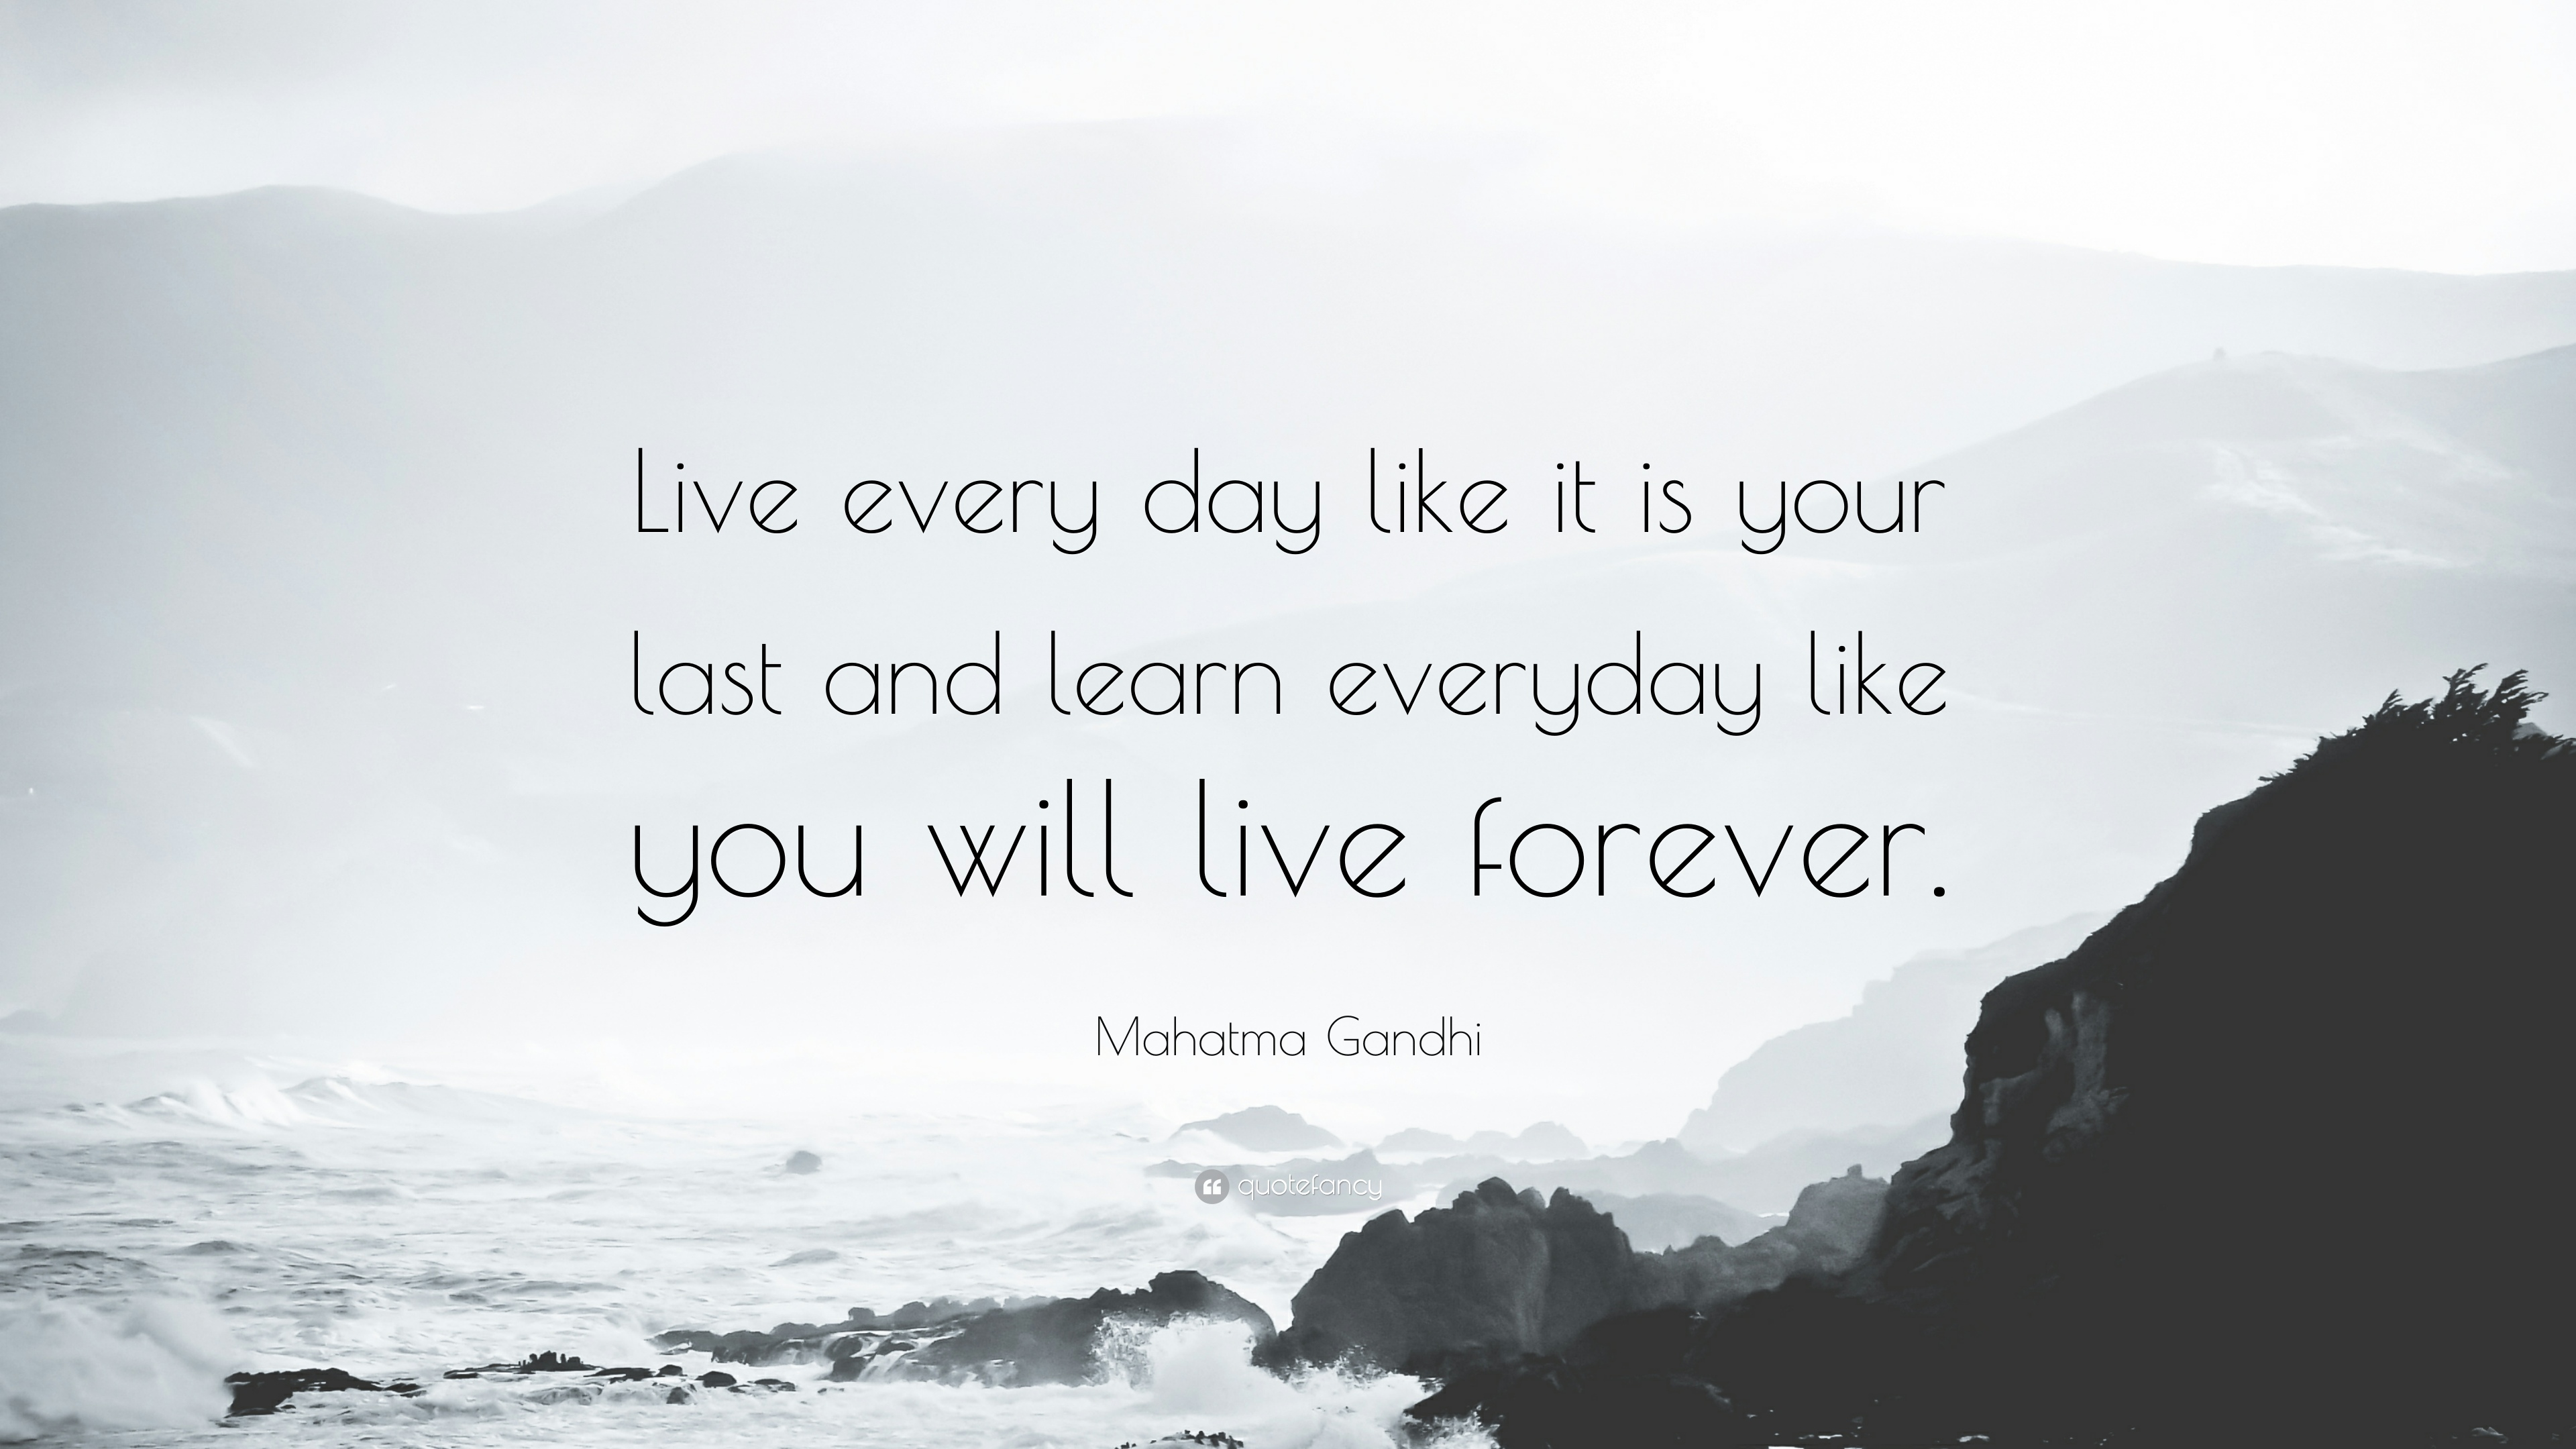 Mahatma Gandhi Quote Live Every Day Like It Is Your Last And Learn